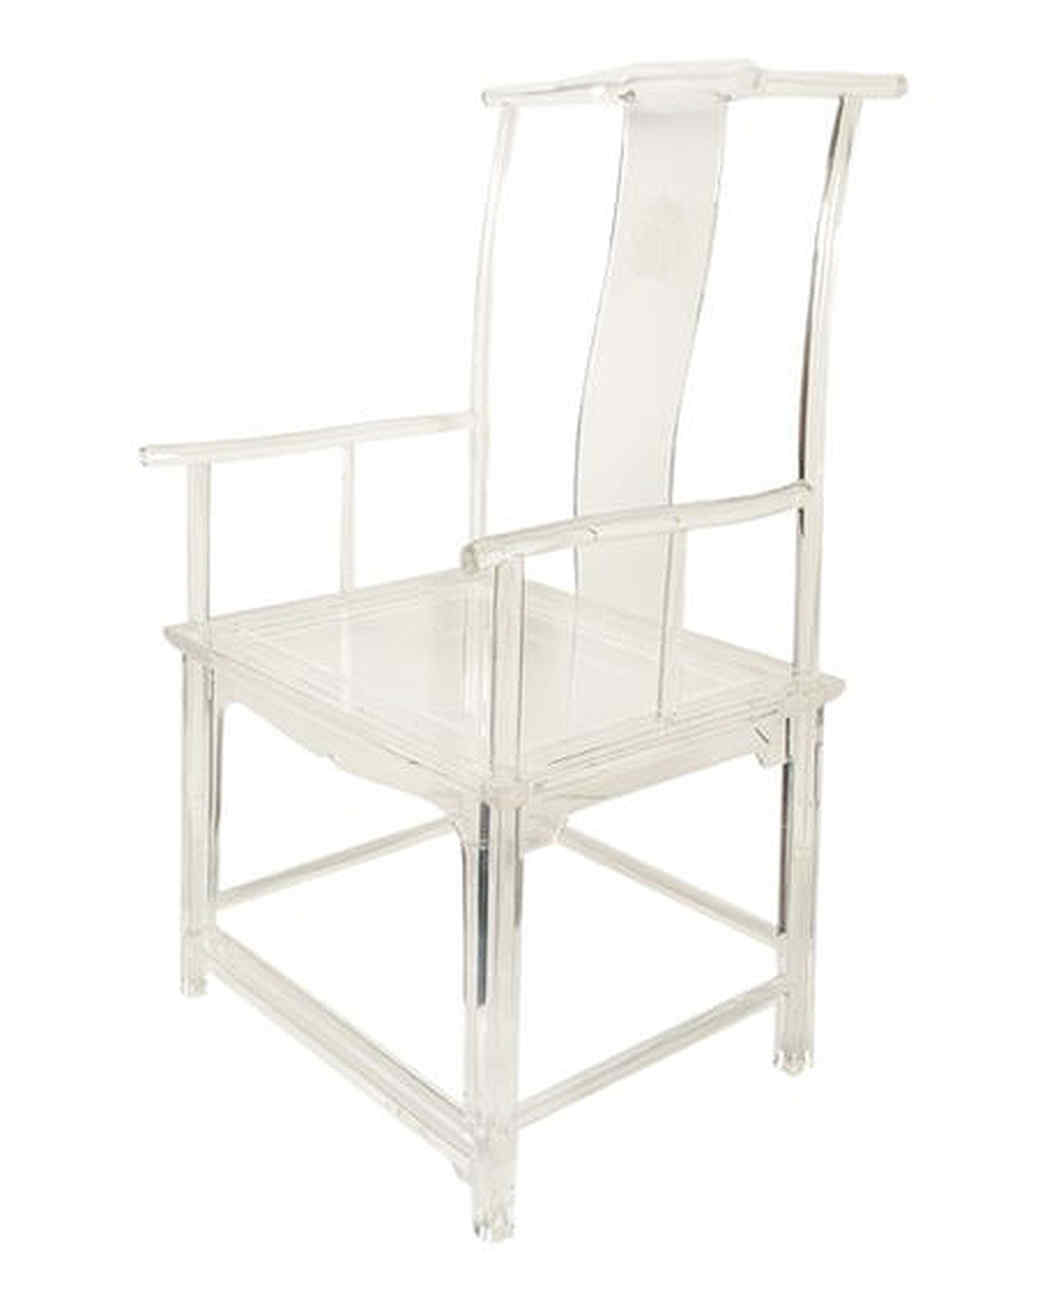 bench eventful furniture an set nesting cupboard life acrylic of lucite tables upholstered trends end and